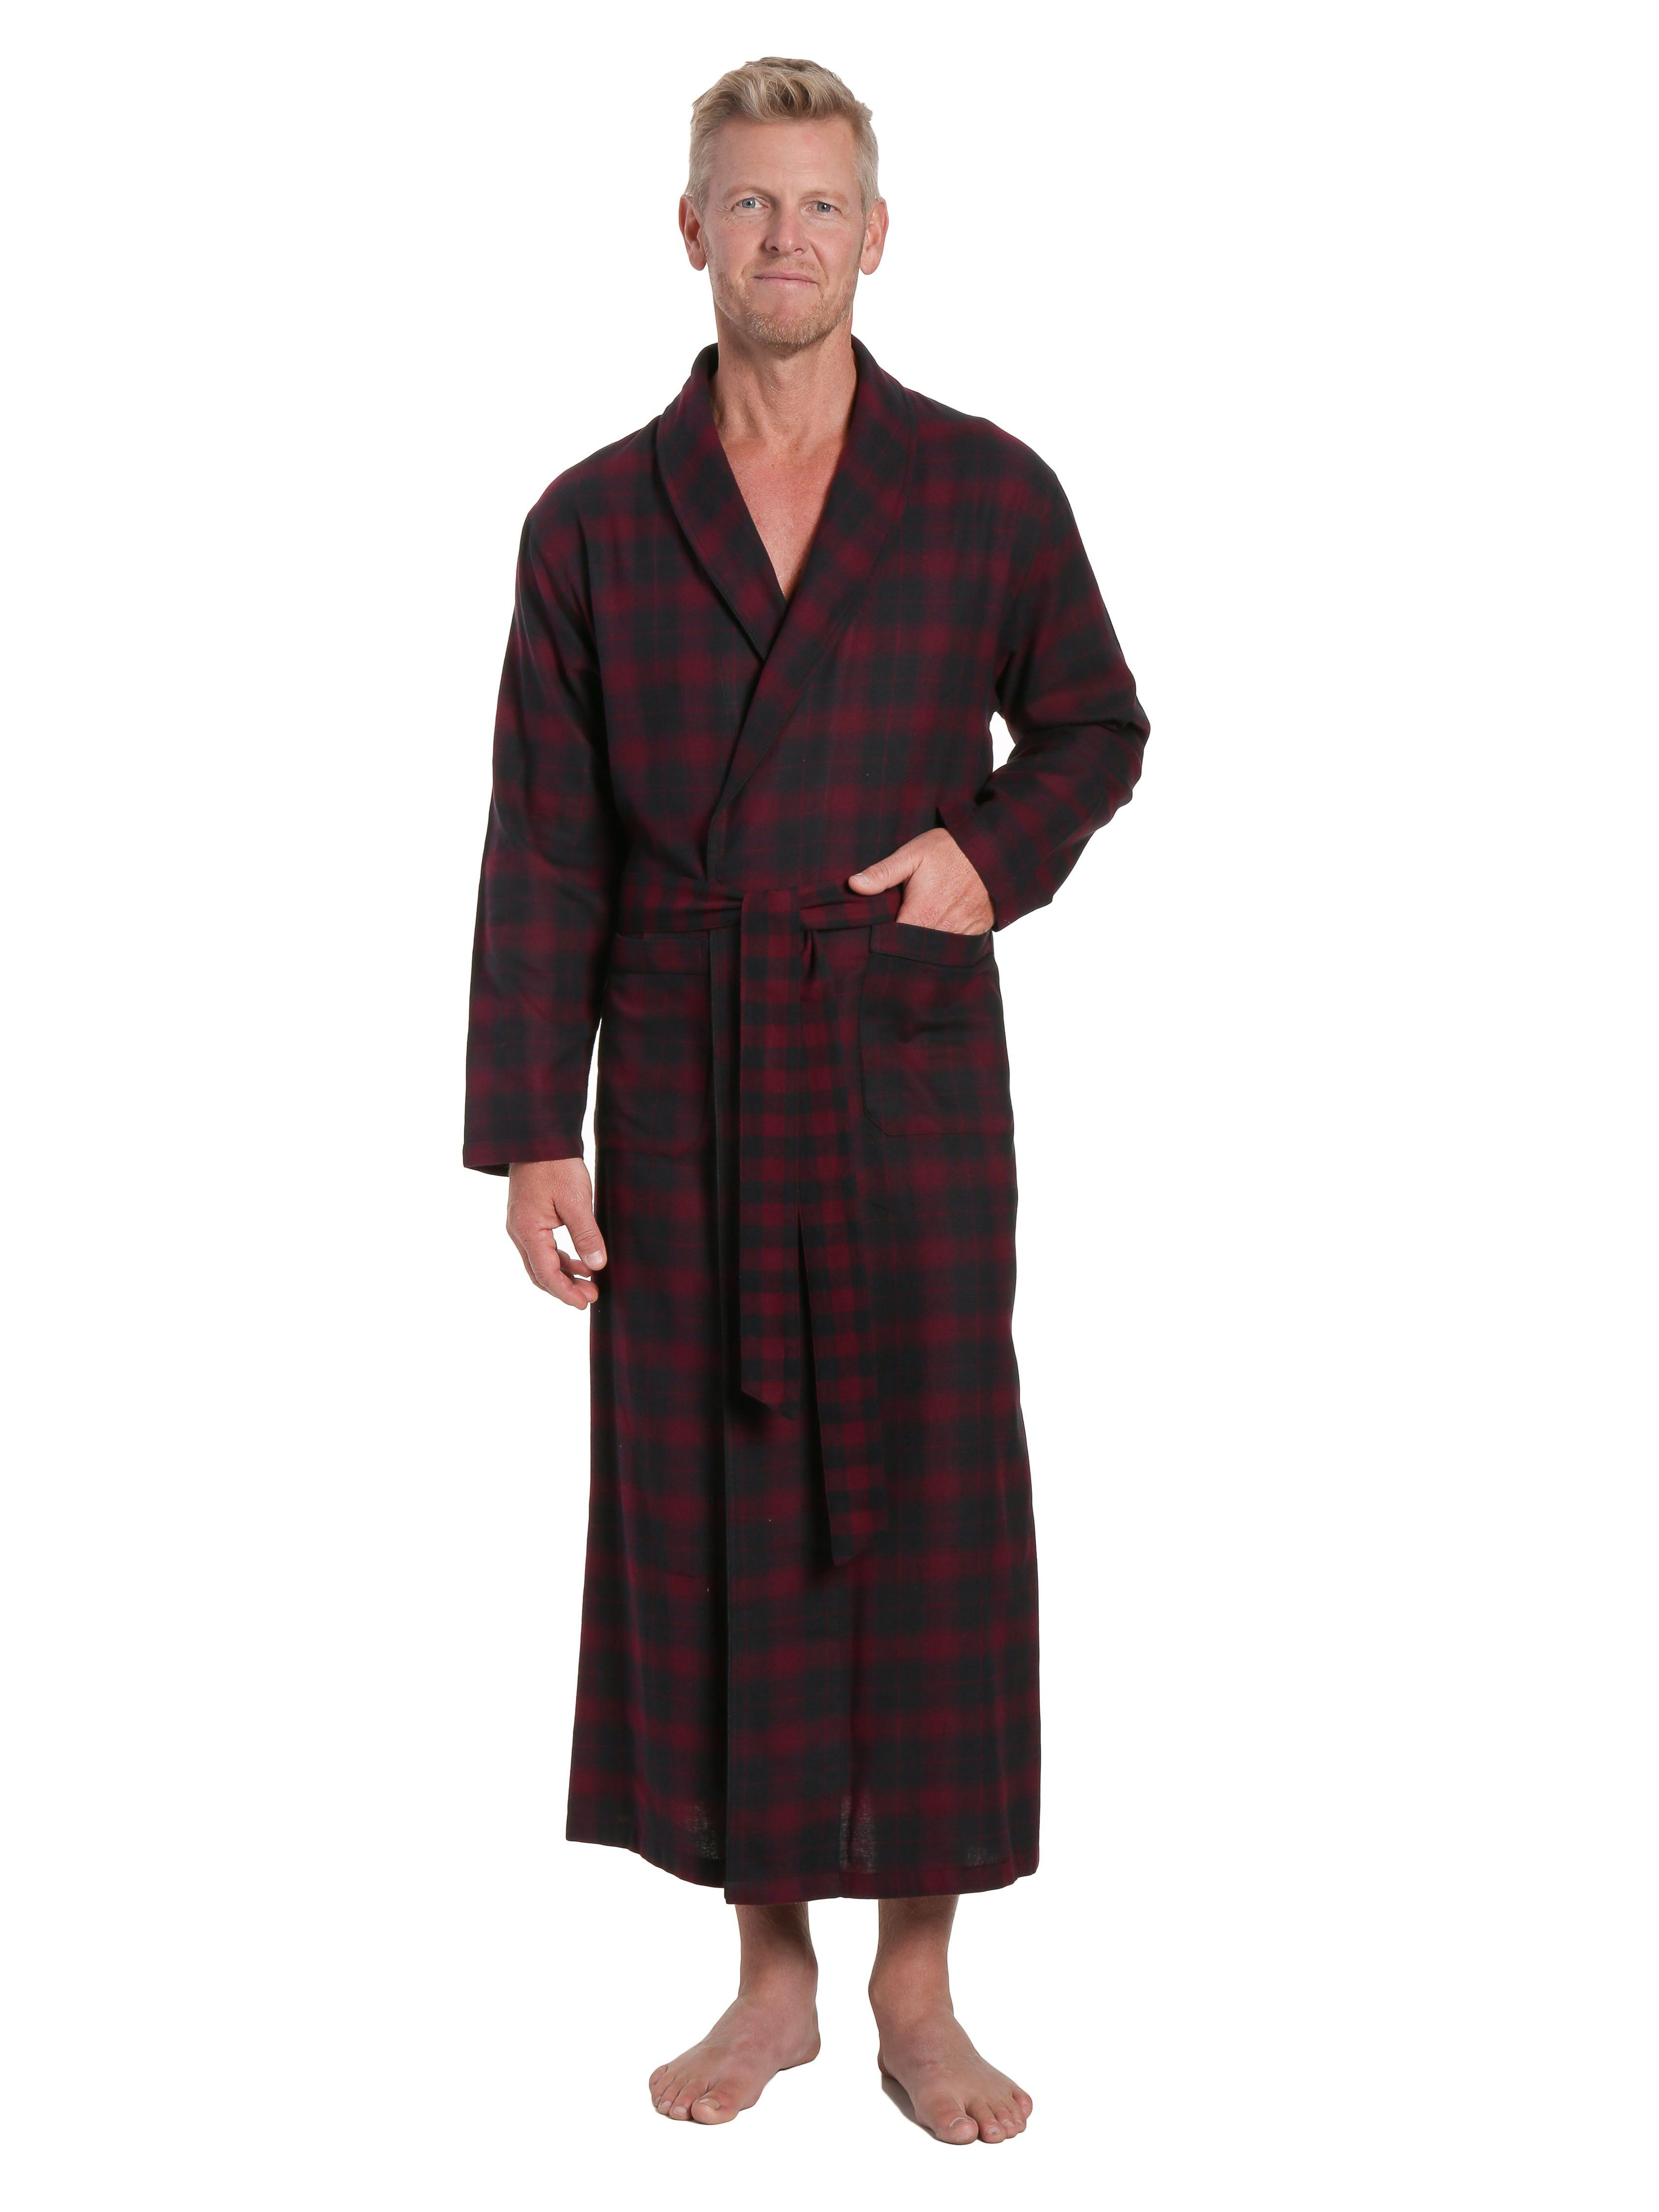 Flannel shirt apron  Menus  Cotton Flannel Long Robe  Long robe and Products